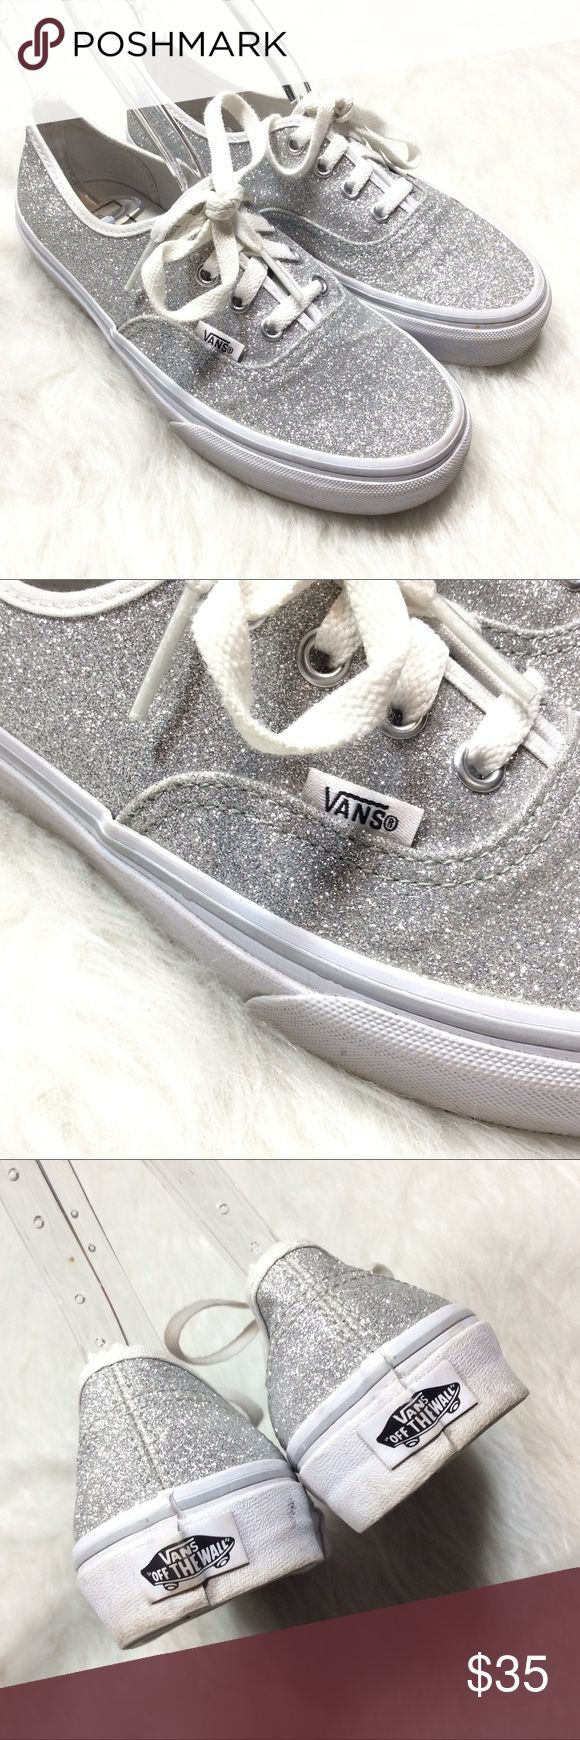 Silver glitter sparkly VANS lo pro lace up shoes Worn only a couple times! In excellent condition. Light wear to soles. Great for prom or weddings, or for anytime you need to spice up your life! Women's size 6.5. I ship same or next day. Thank you for looking at my listing! Vans Shoes Sneakers